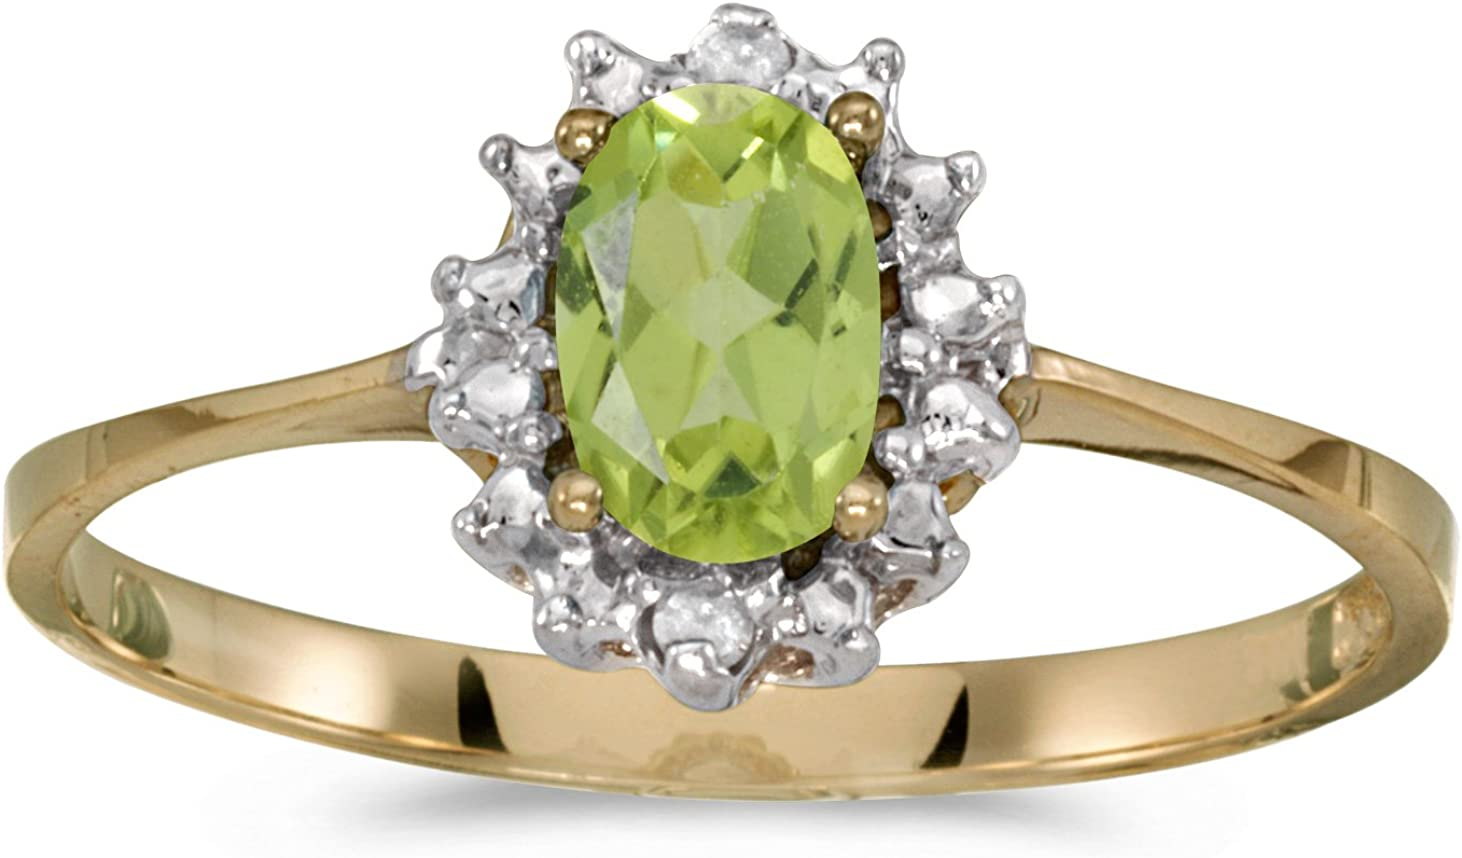 FB Jewels 14k Yellow Gold Genuine Birthstone Solitaire Oval Gemstone And Diamond Wedding Engagement Statement Ring